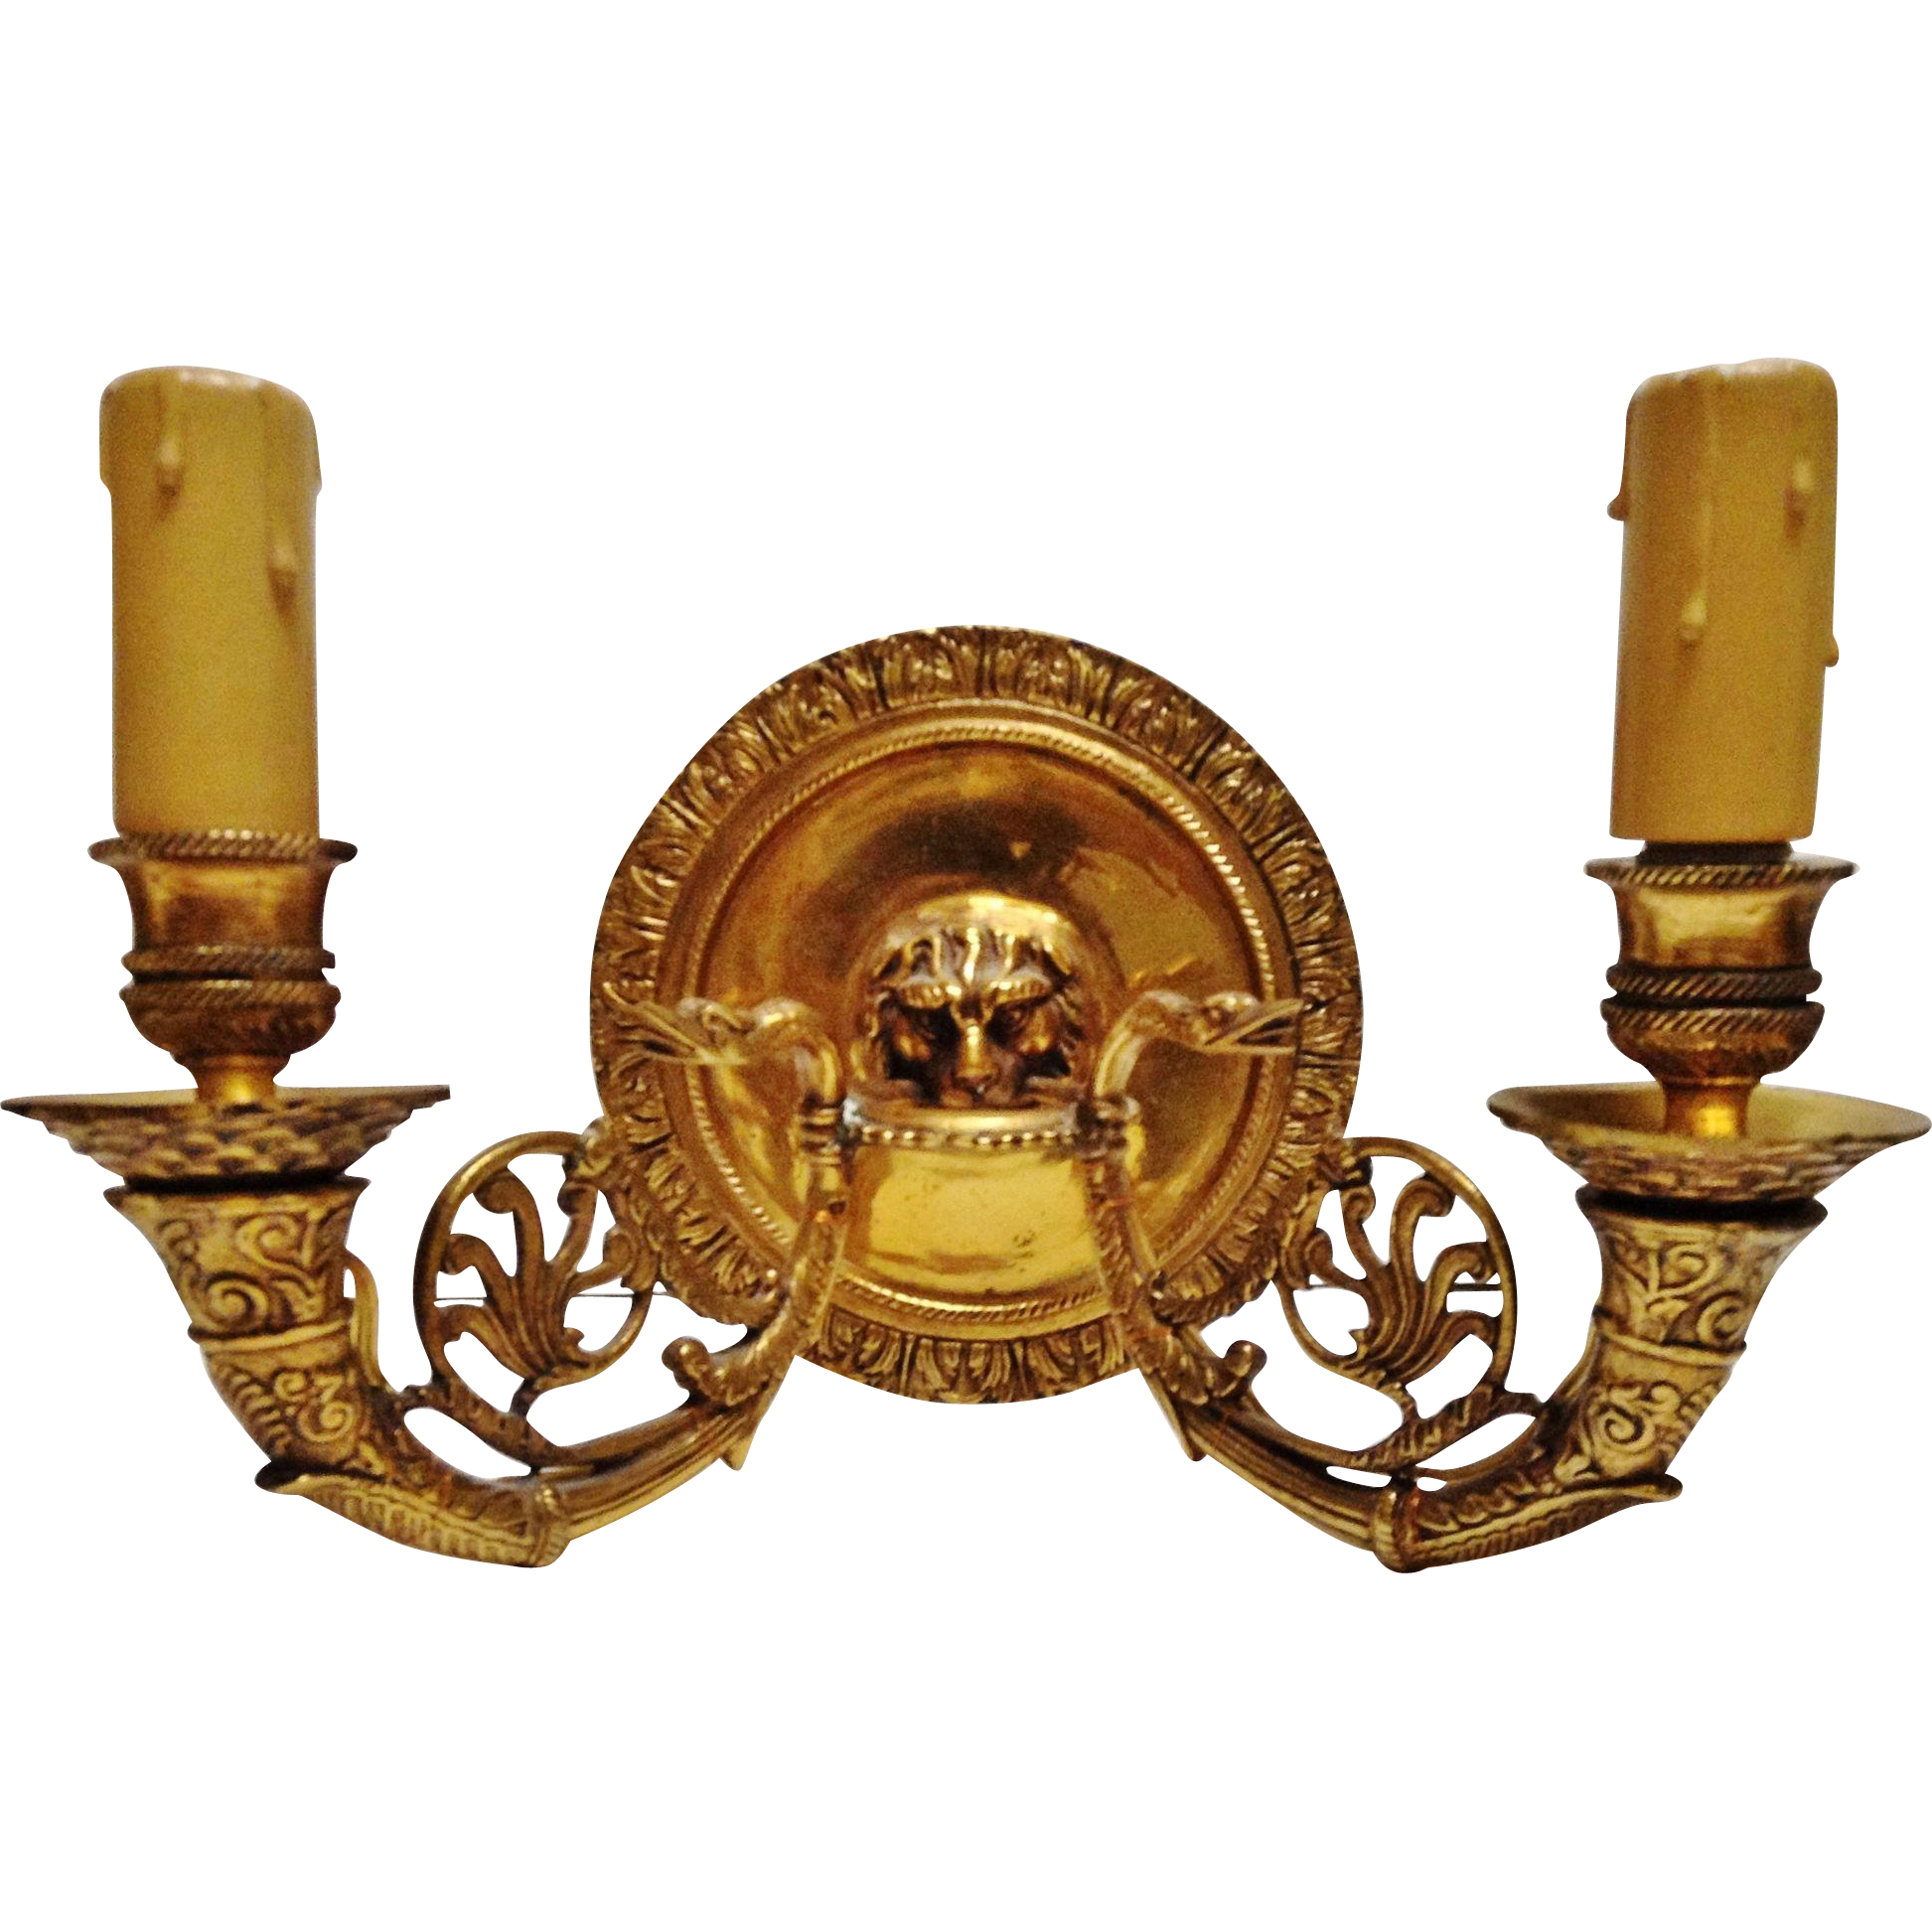 Vintage Pair of French Empire Bronze Wall Sconces, Lion & Swan from collectorsdelights on Ruby Lane